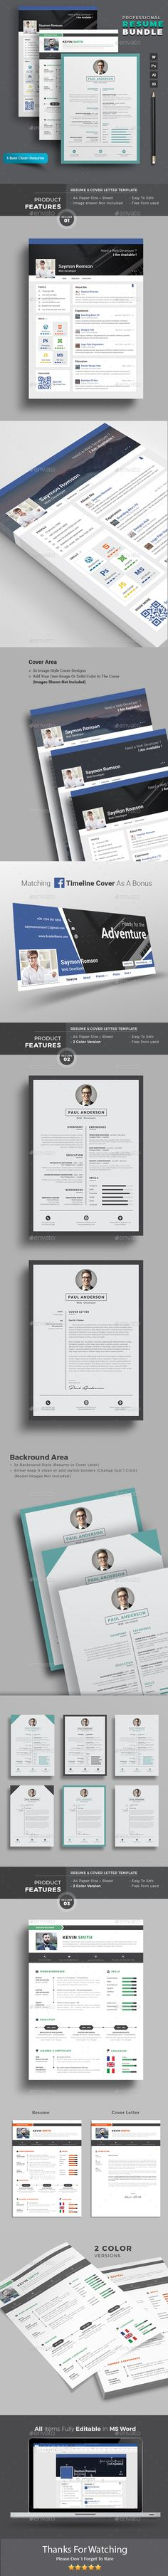 3 Most unusual resume design that can